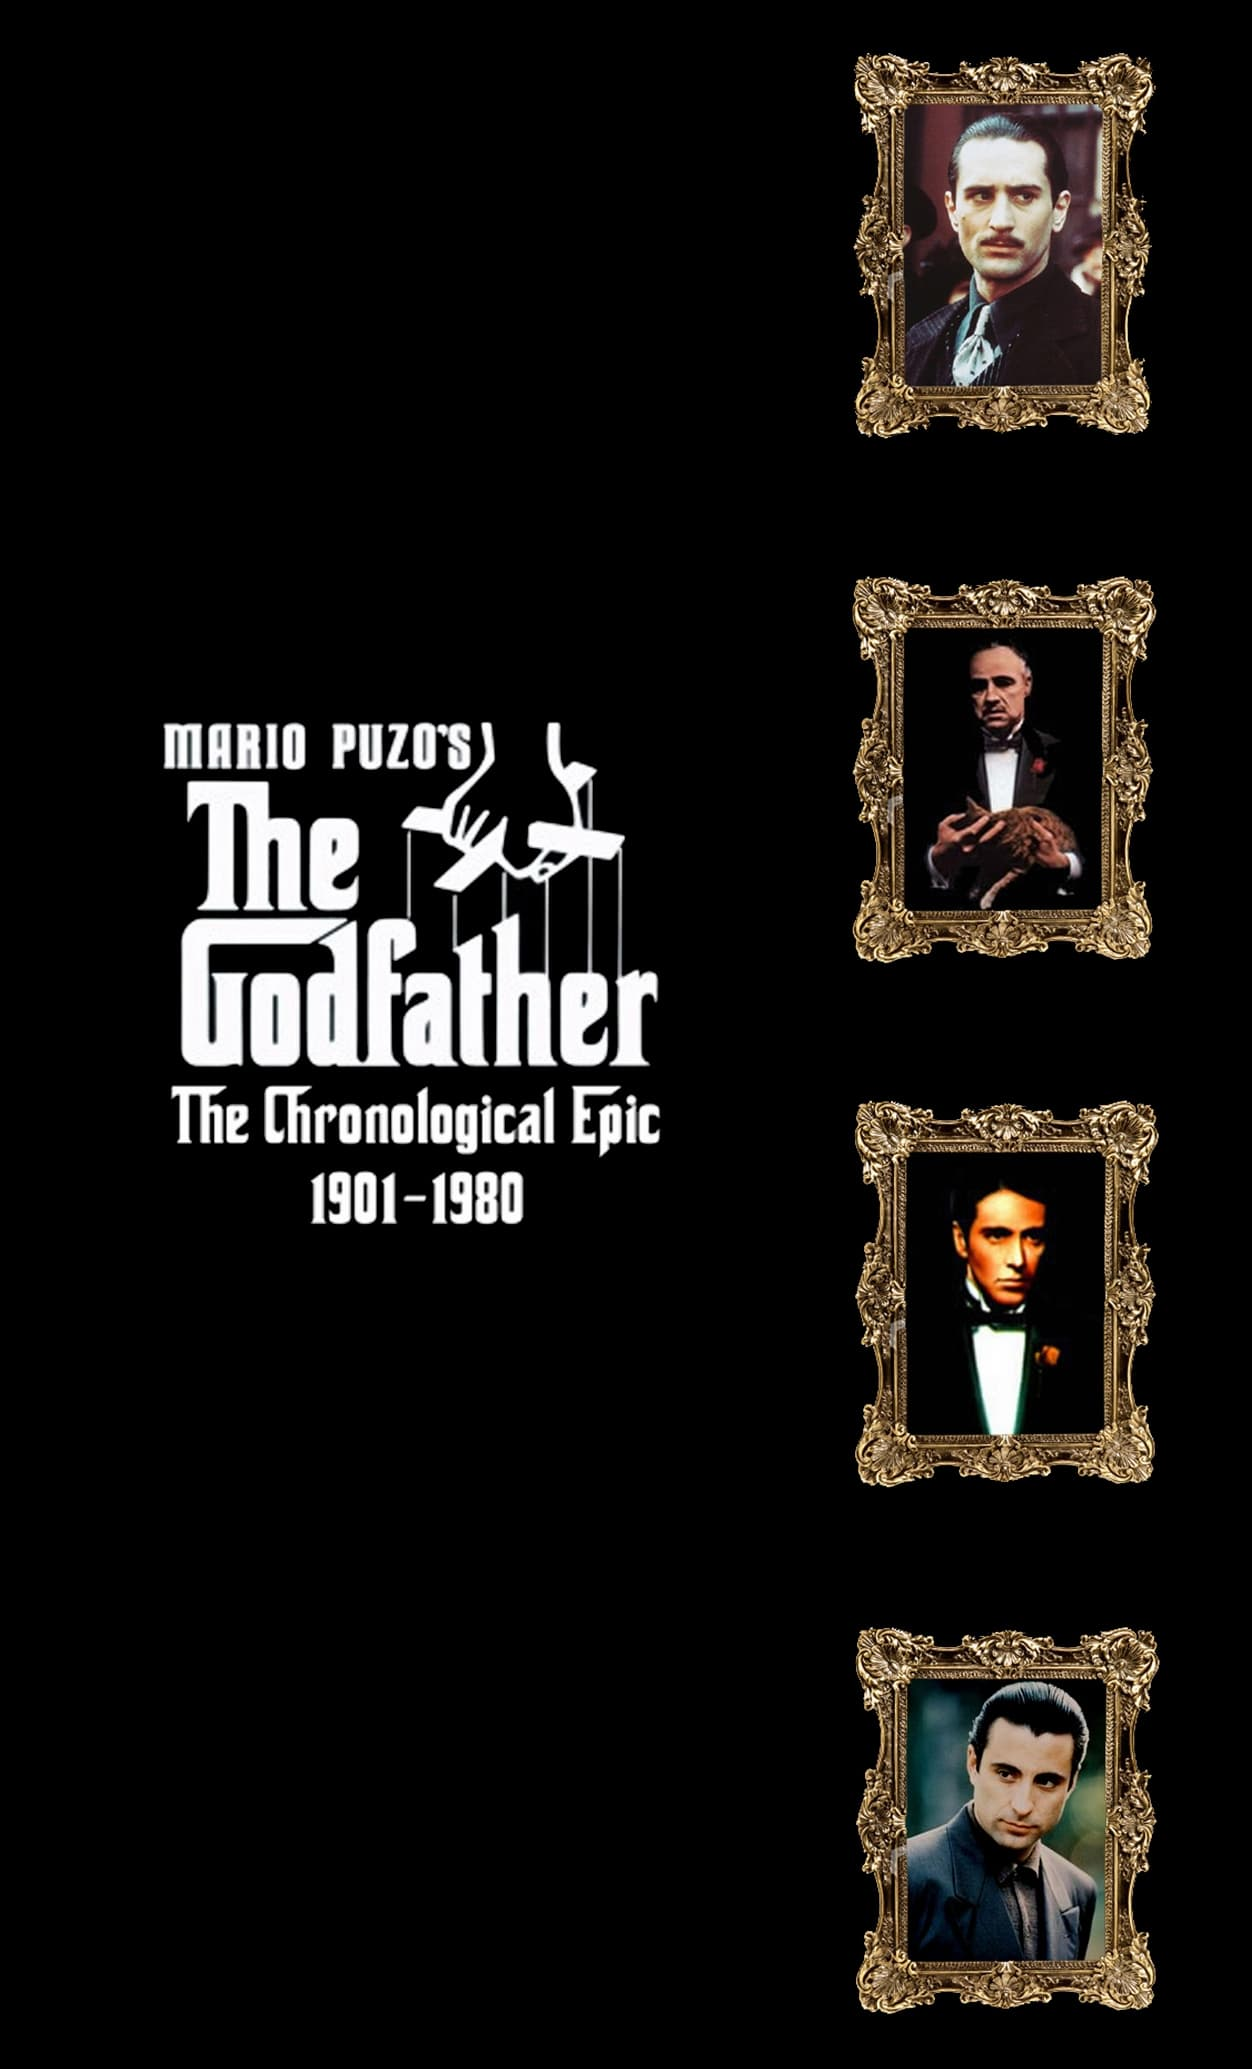 The Godfather Saga: 1901-1980